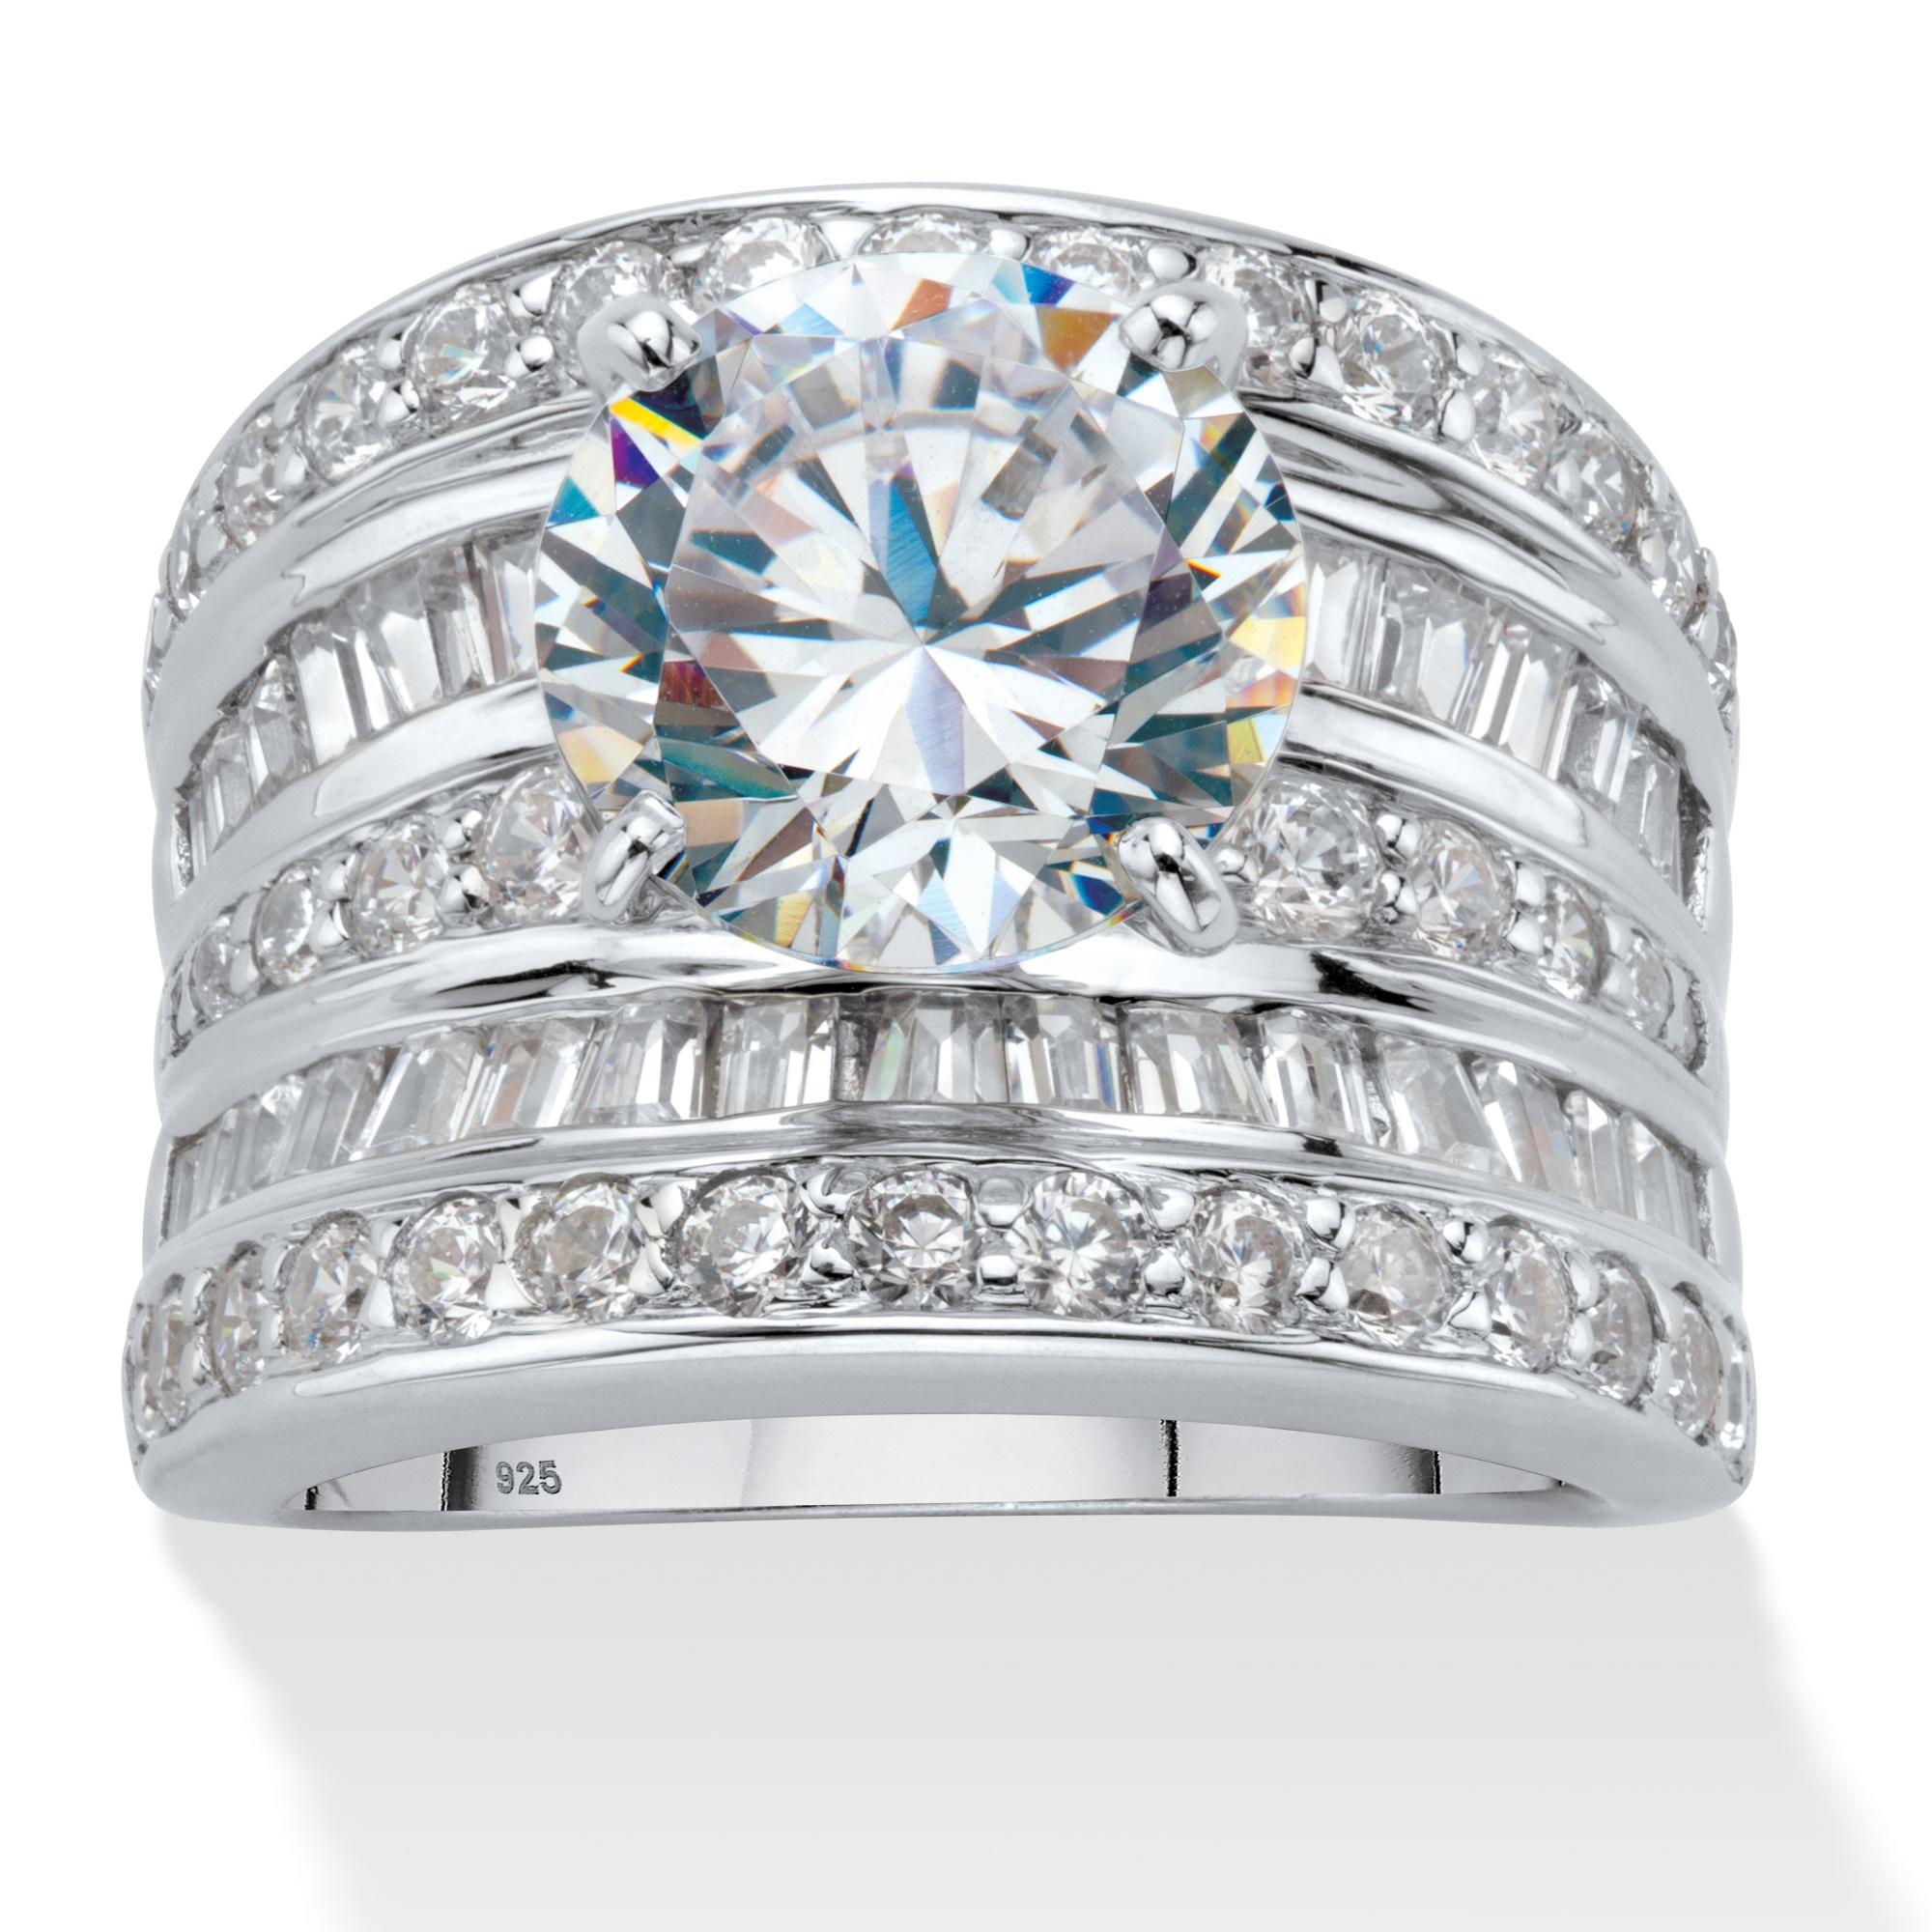 714 TCW Round Cubic Zirconia Multi Row Scoop Engagement Ring In Platinum Over Sterling Silver